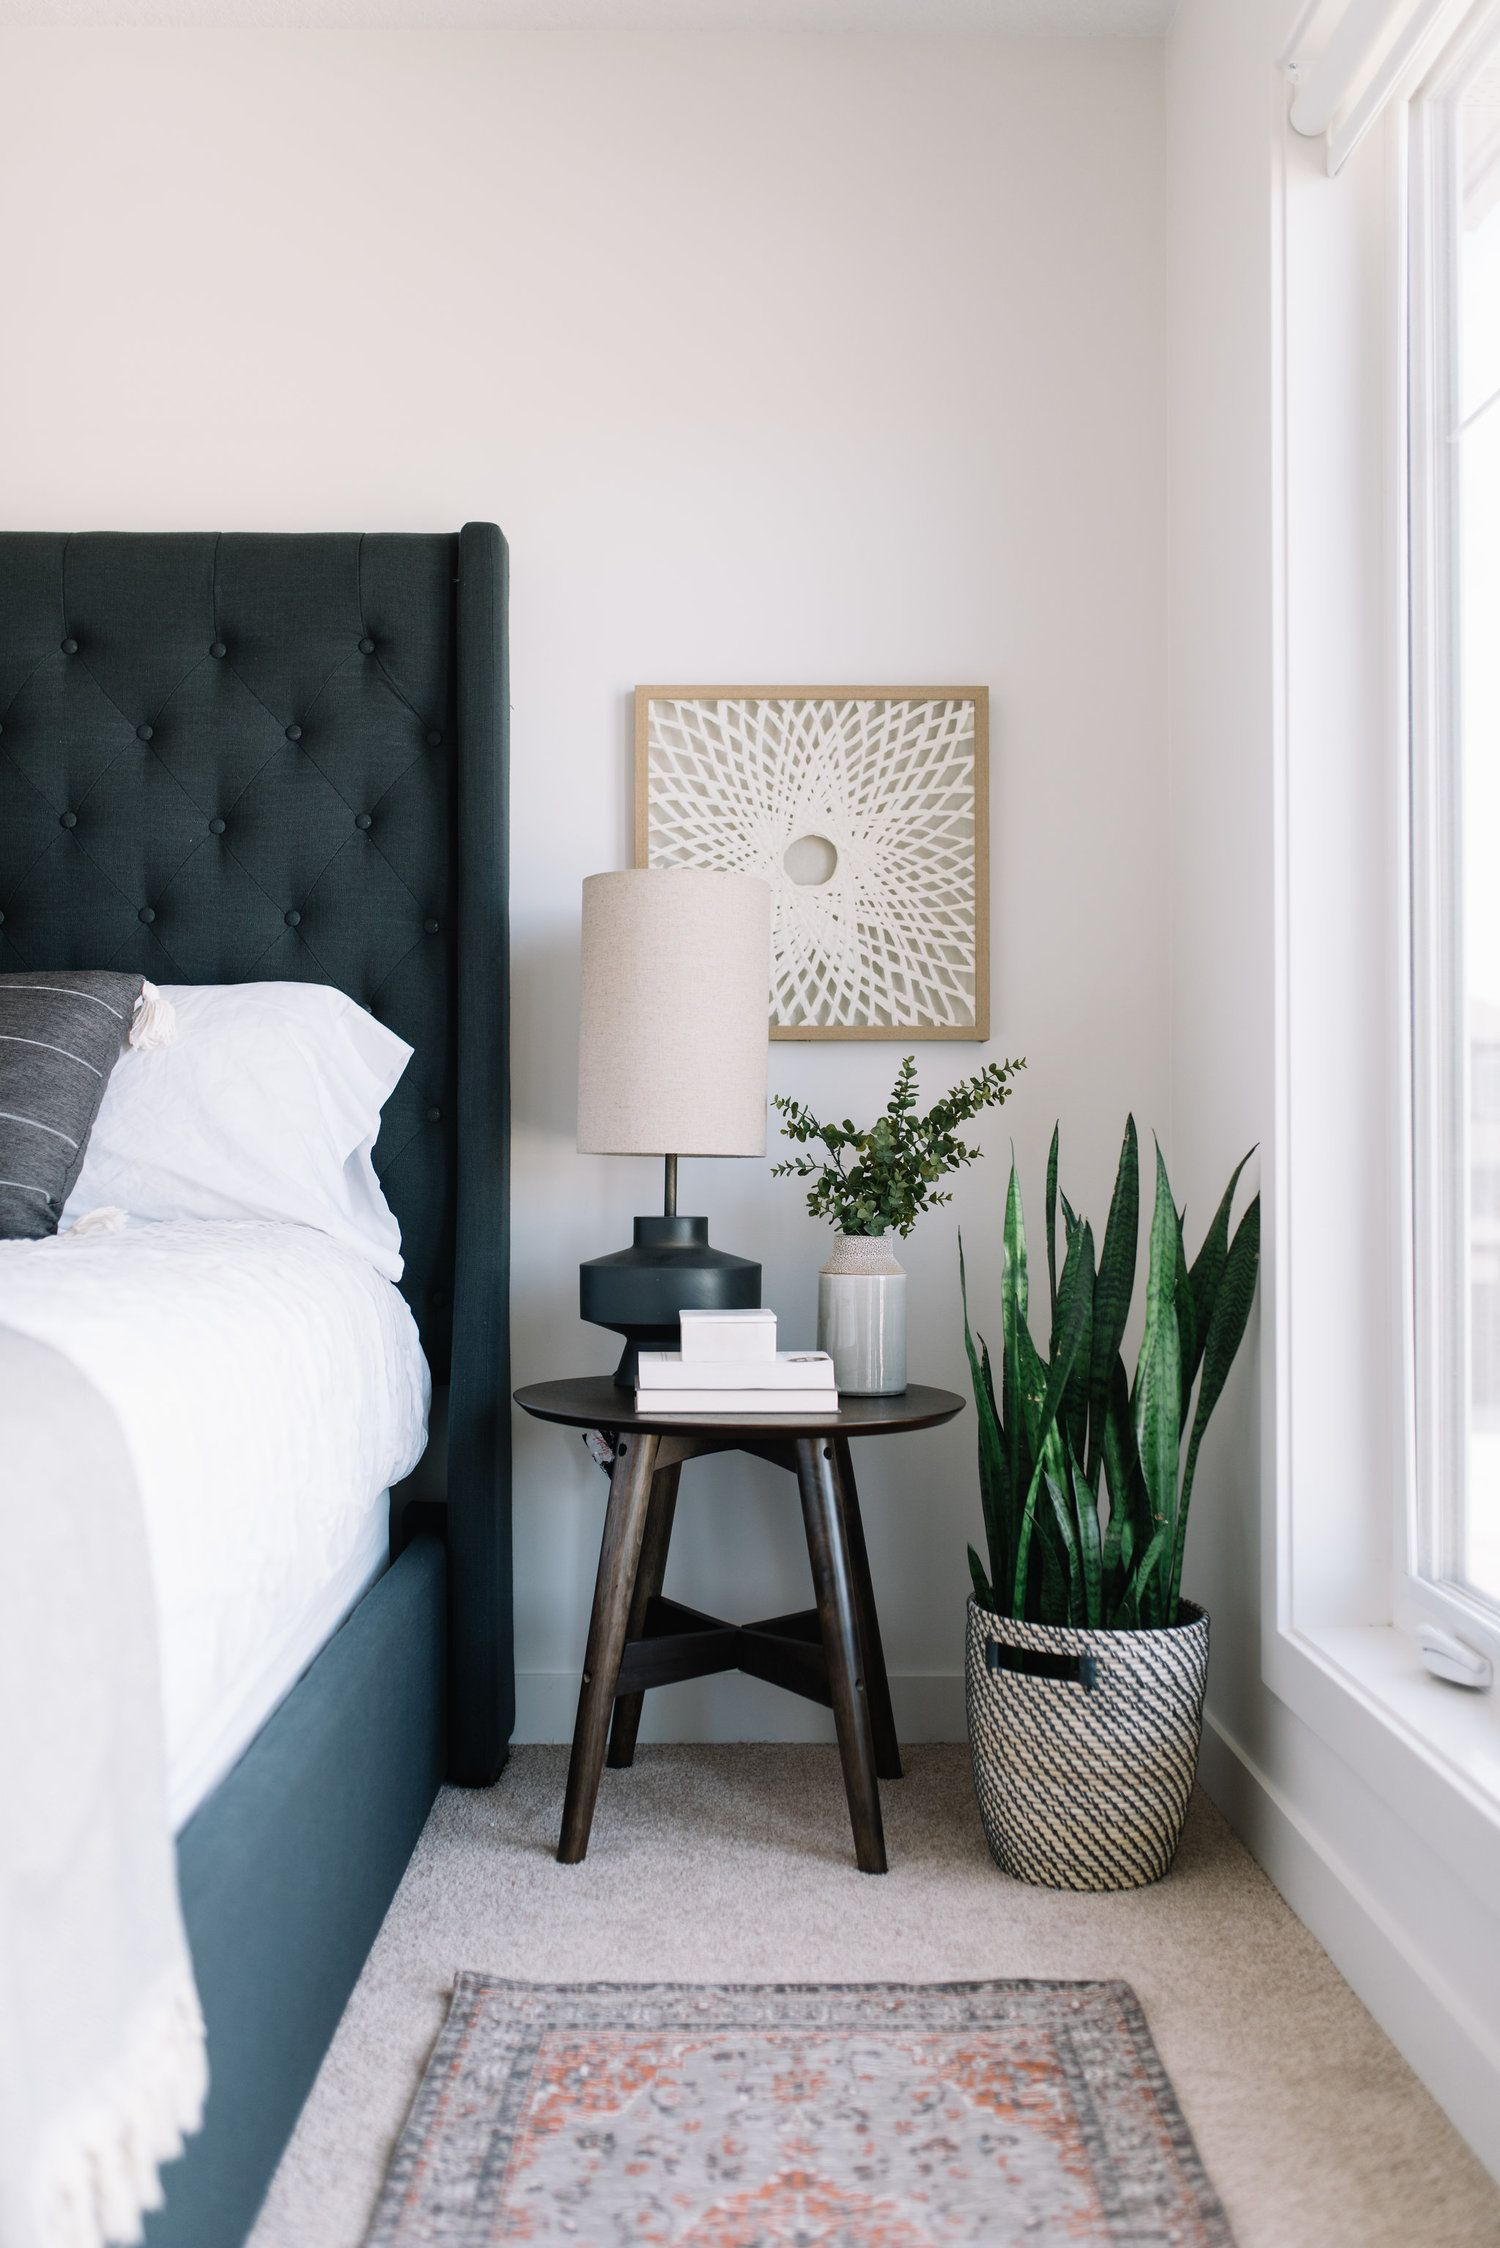 Moving Up! A Peek at our Bedroom Refresh Bedside table